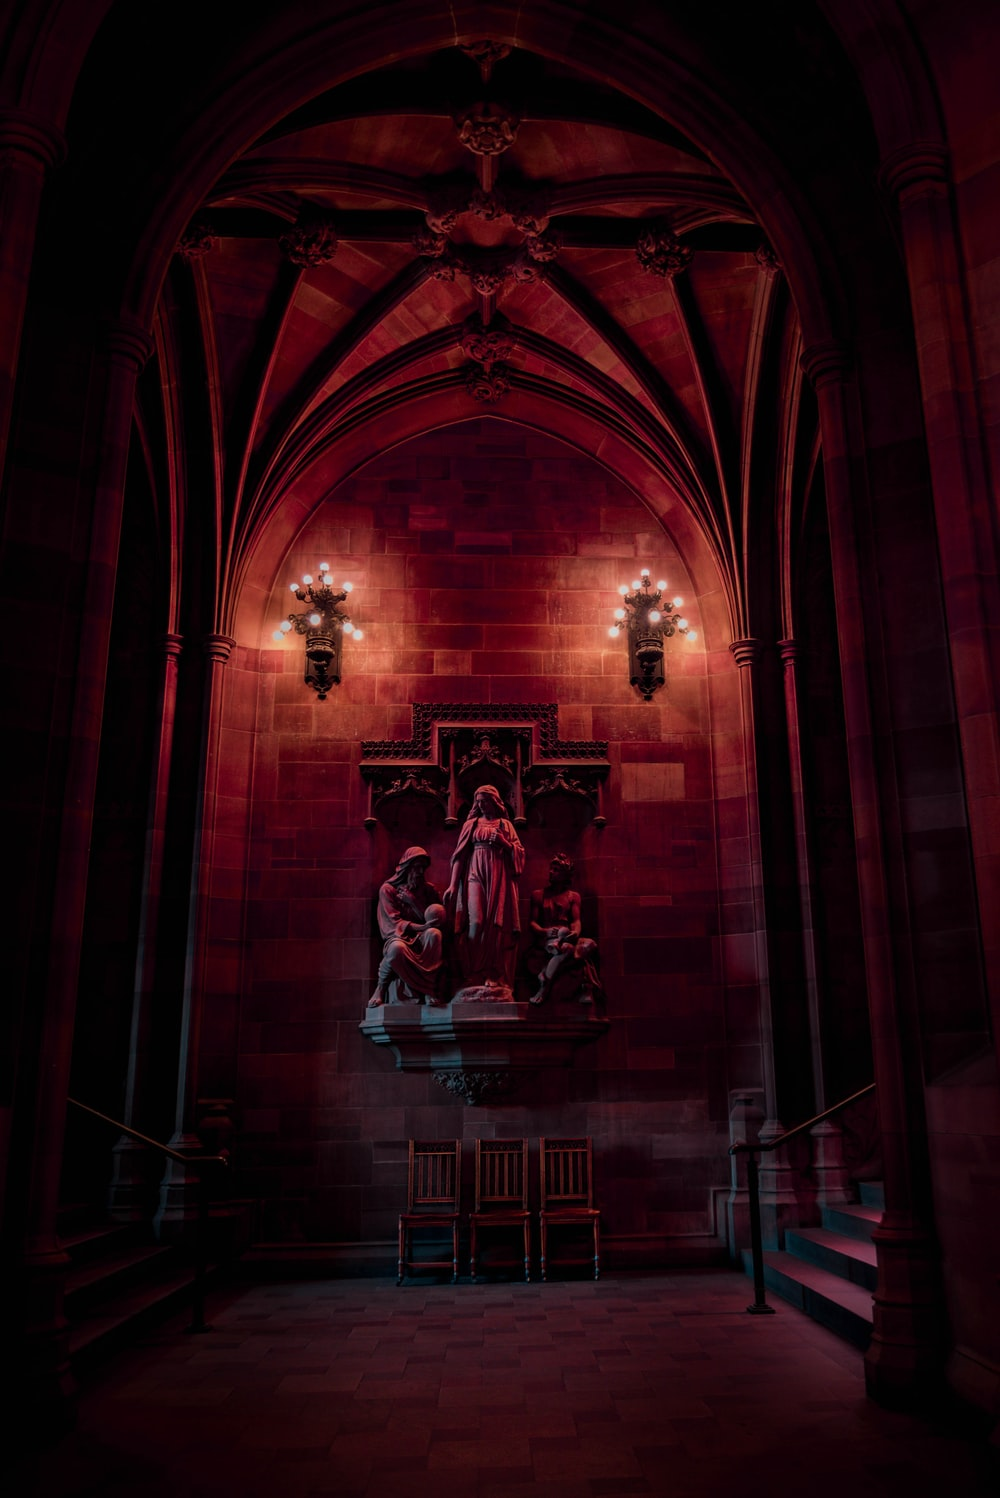 religious statues inside cathedral